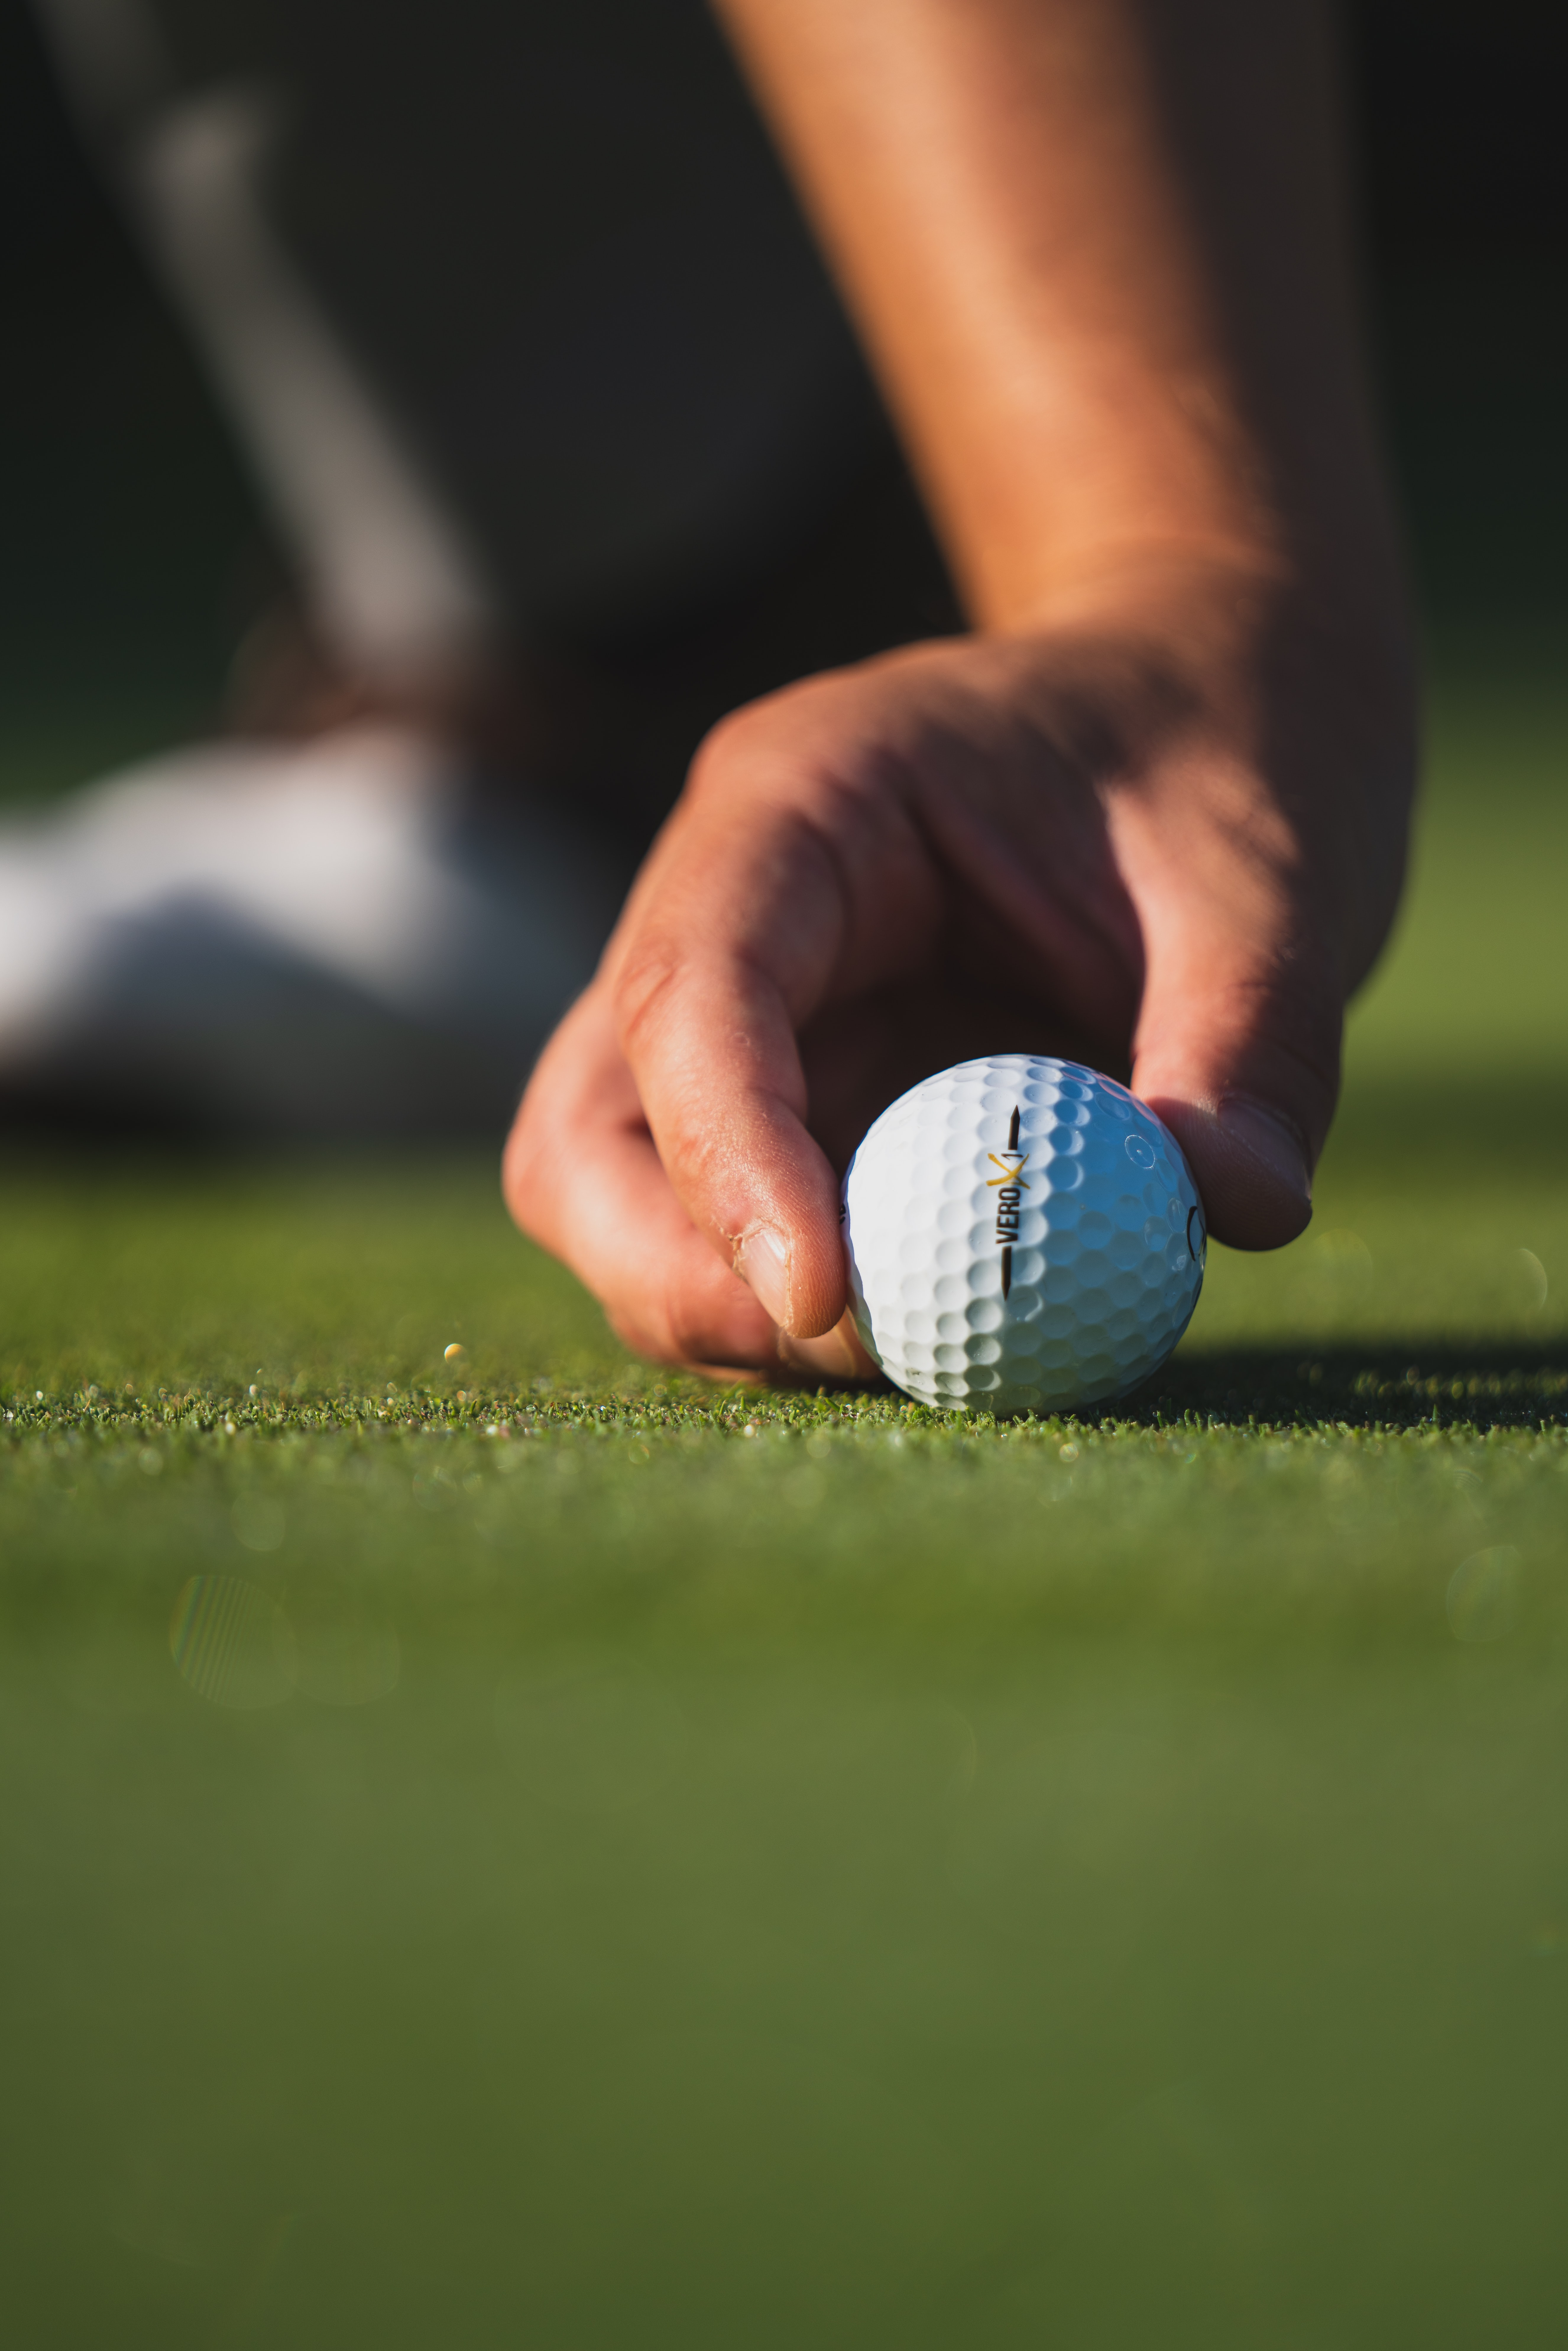 86406 download wallpaper Sports, Grass, Golf, Hand, Ball, Fingers screensavers and pictures for free